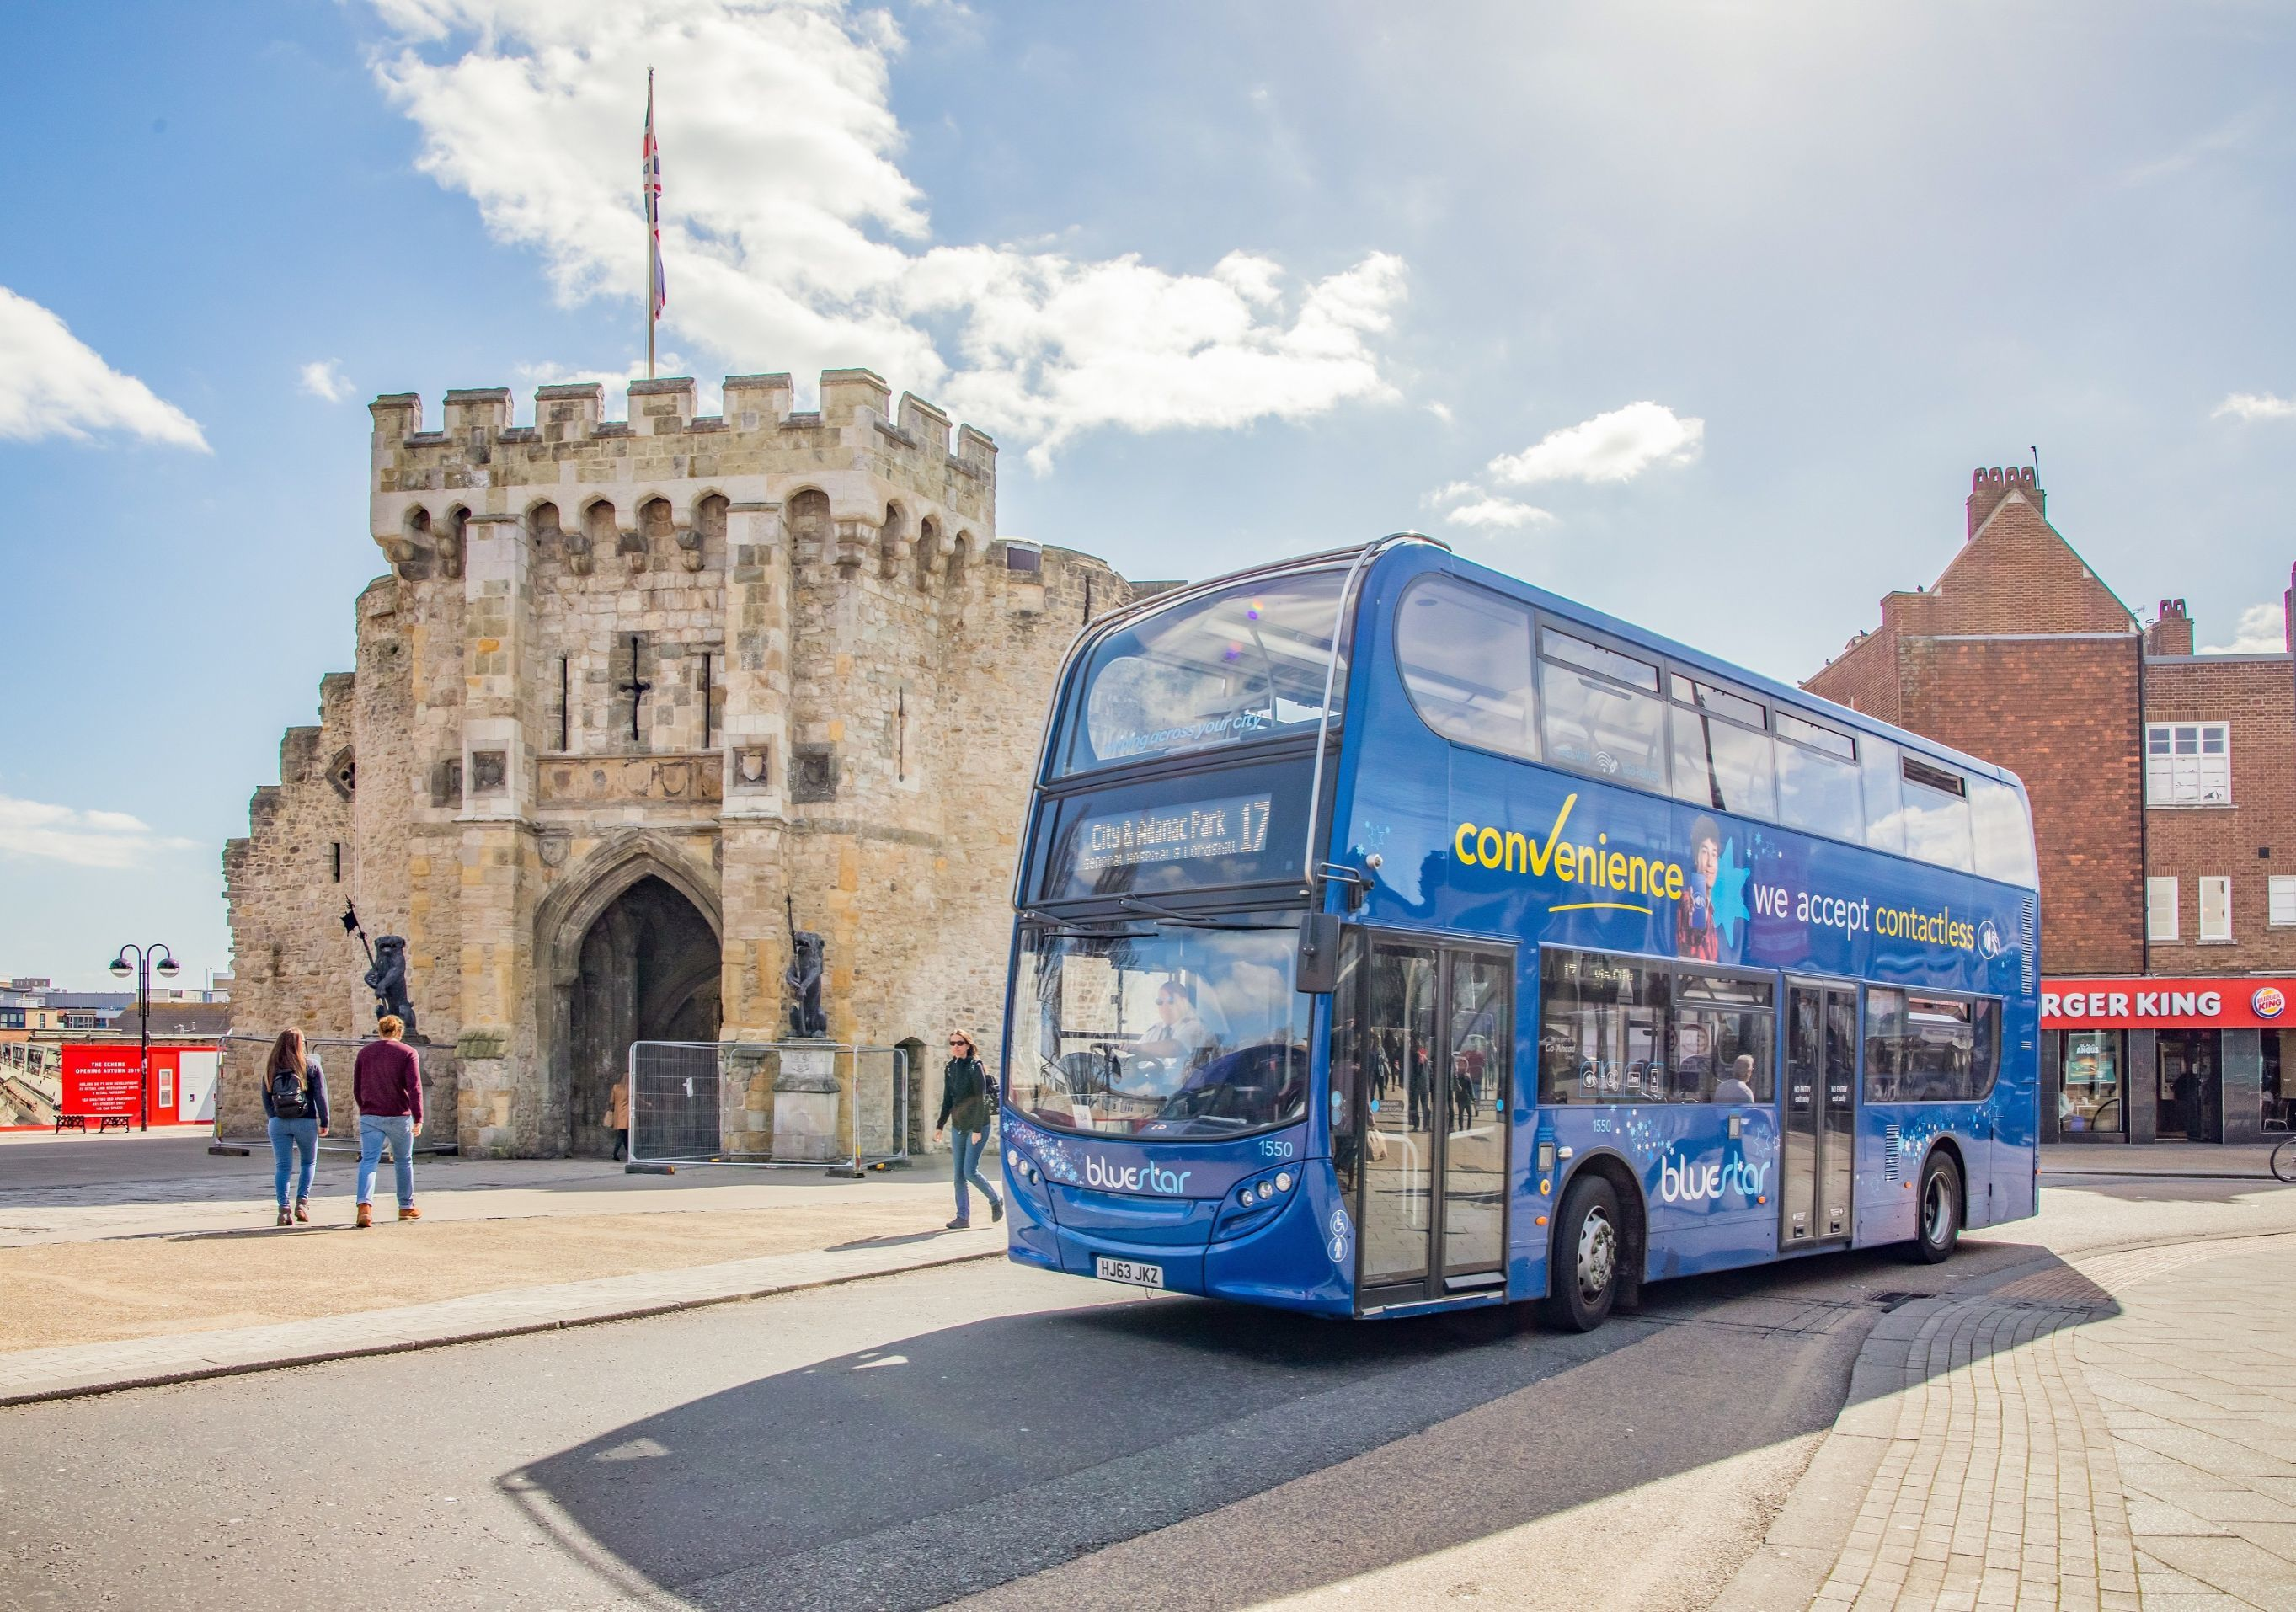 Travel by bus in Southampton and make the Bluestar Promise!